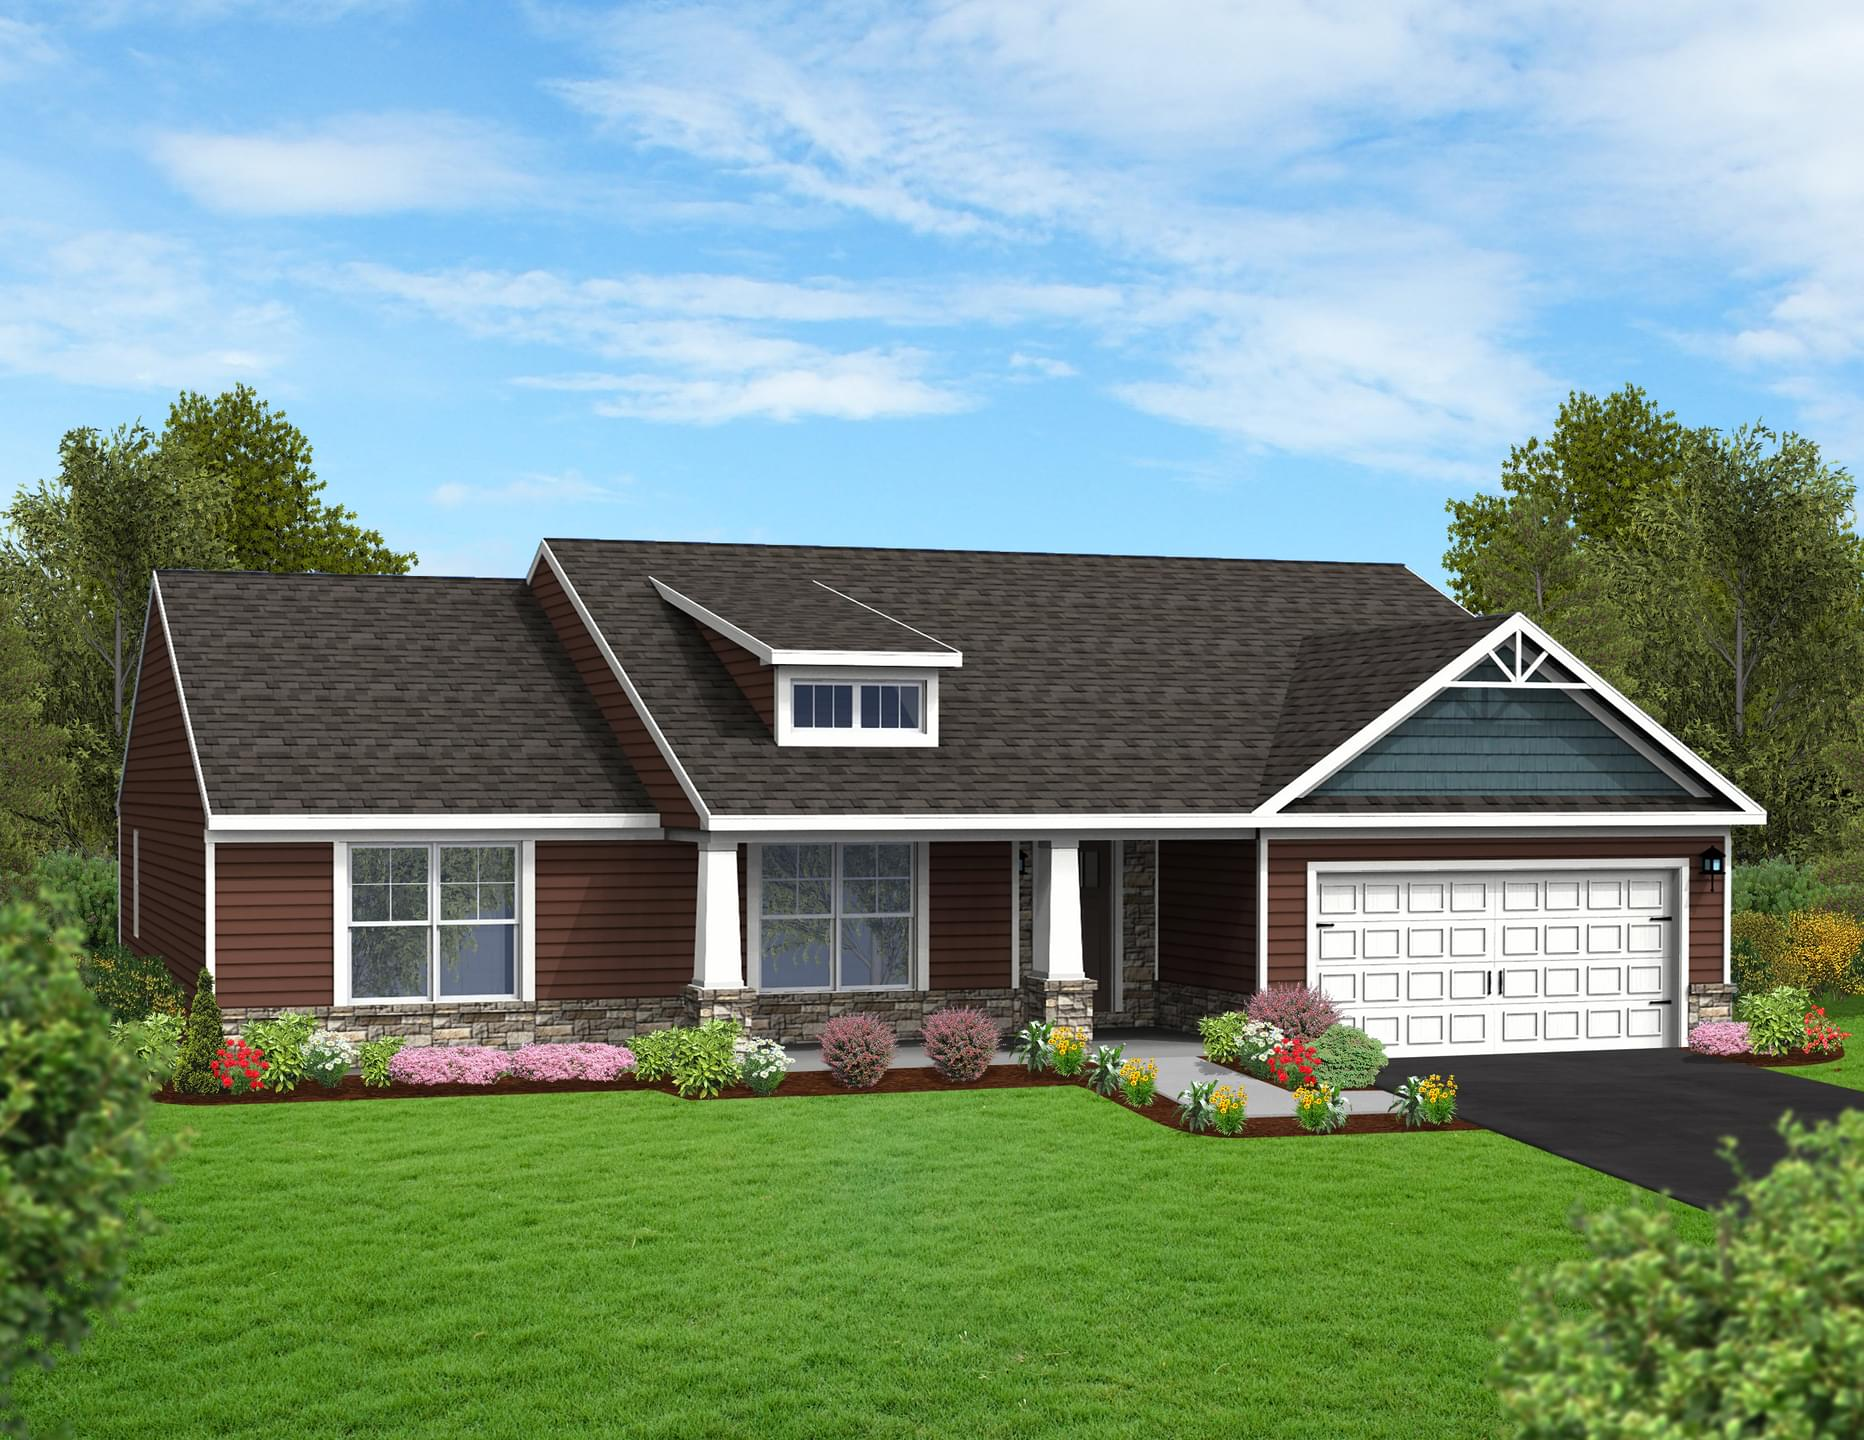 Berks Homes Elevation Image Cherry Blossom